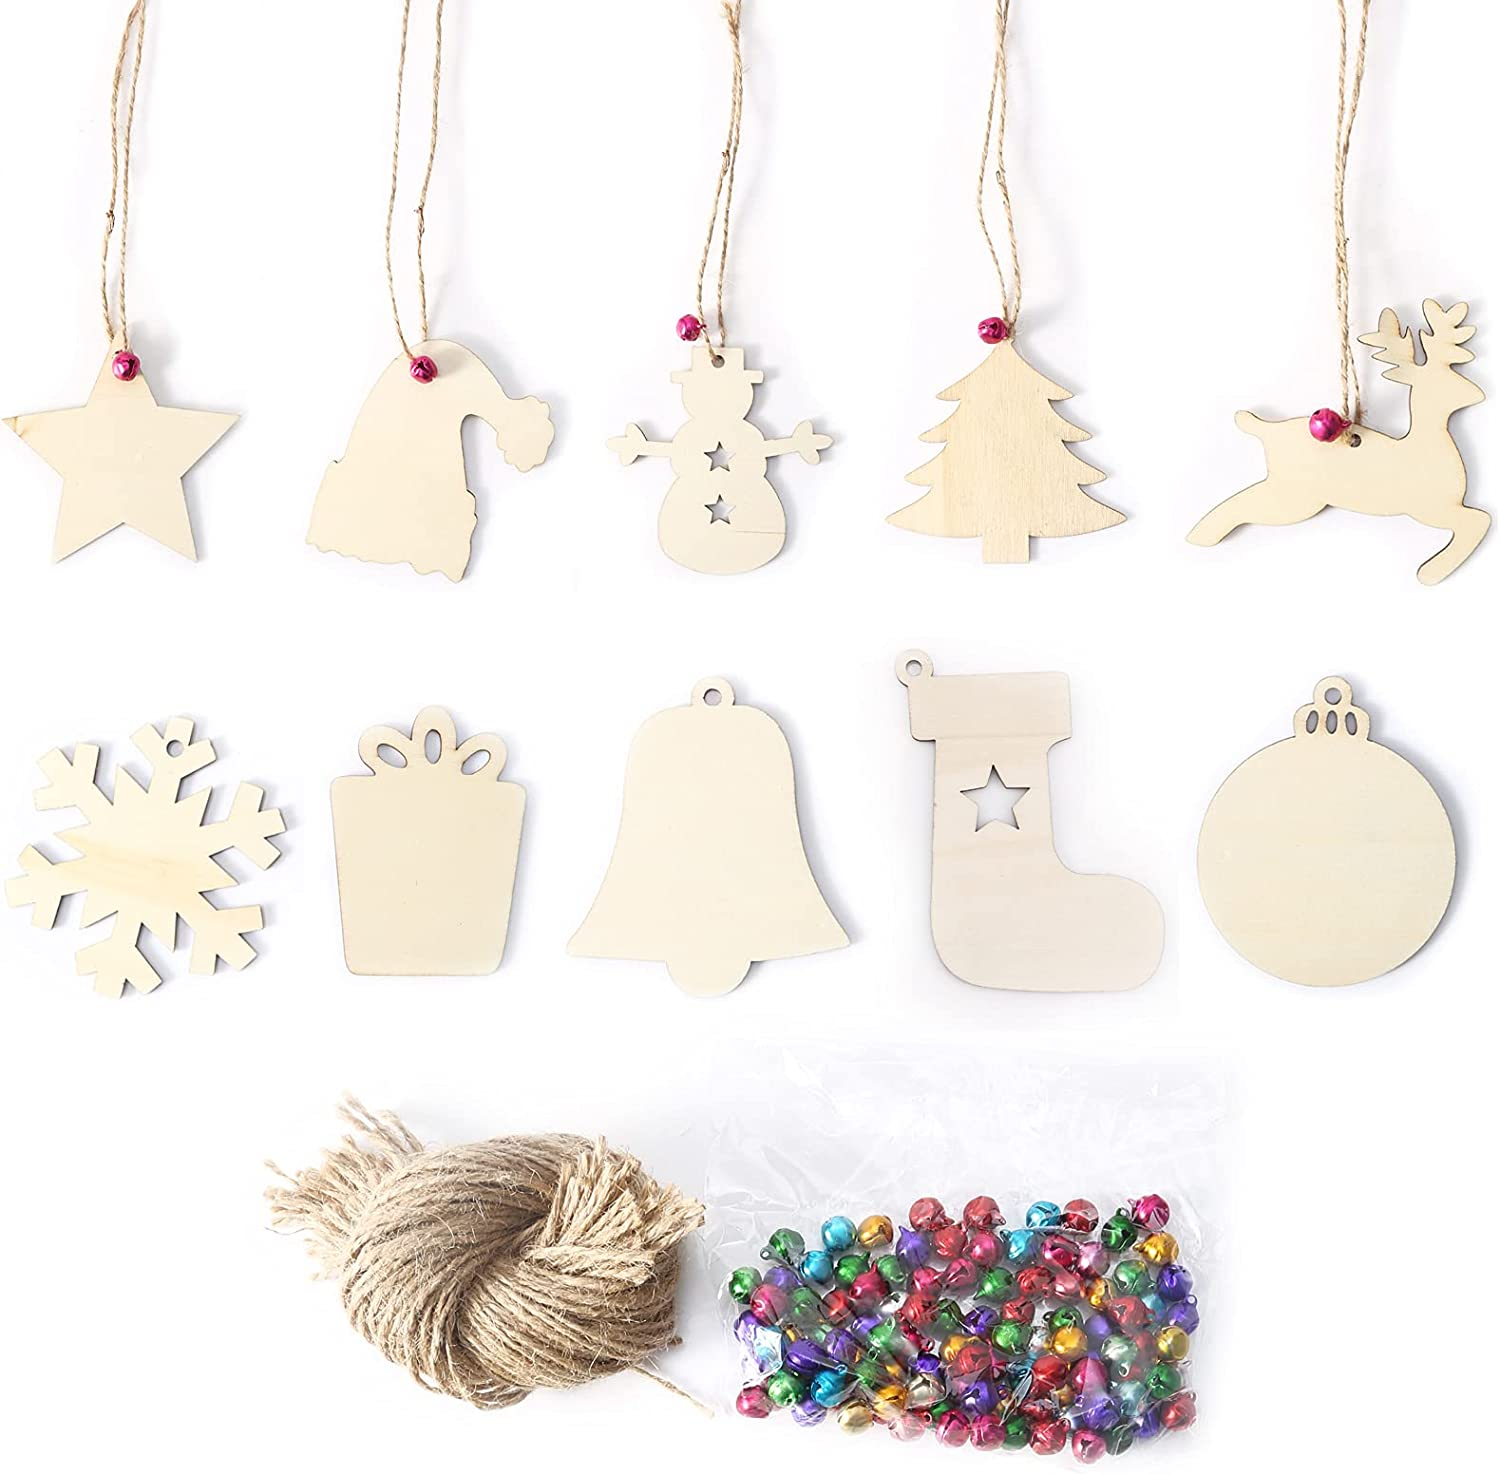 Leyeet Max 65% OFF Unfinished Wooden Ornaments Christmas Wood Board Pendant 25% OFF